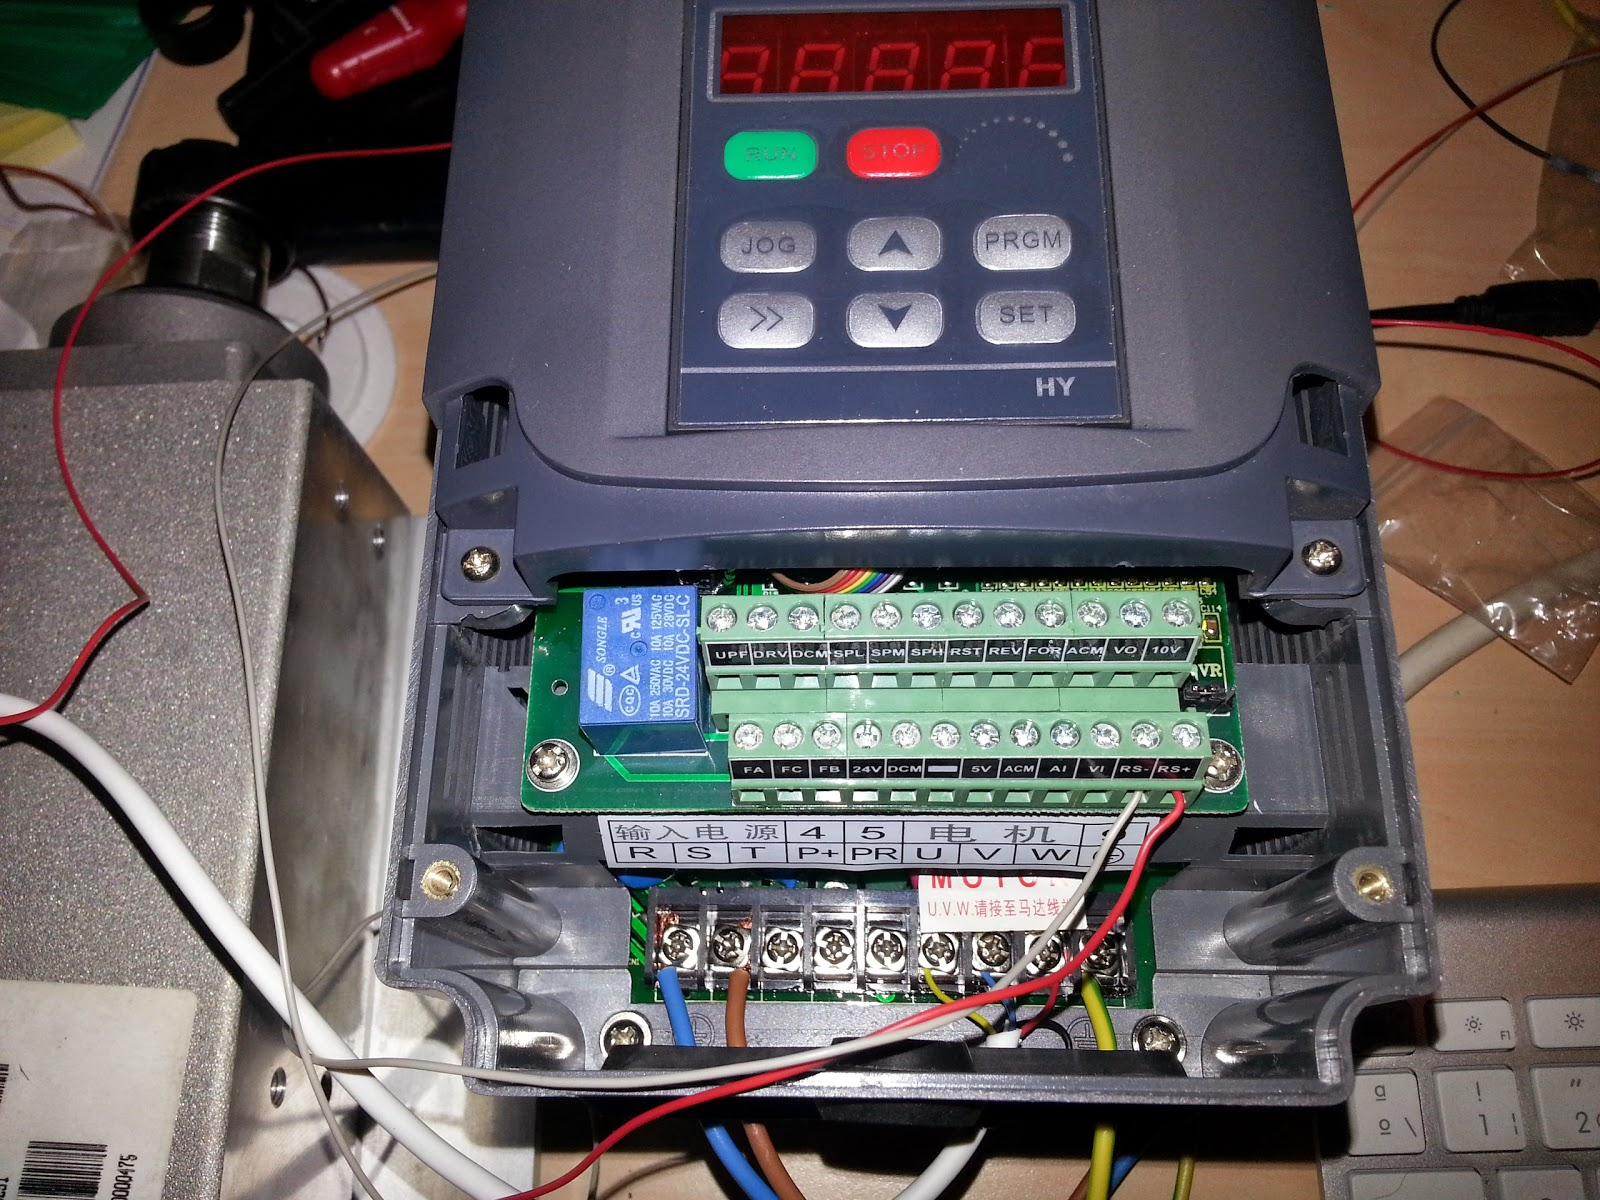 Vfd Control Wiring Diagram 2002 Toyota Camry Exhaust System With Arduino Using Rs485 Link